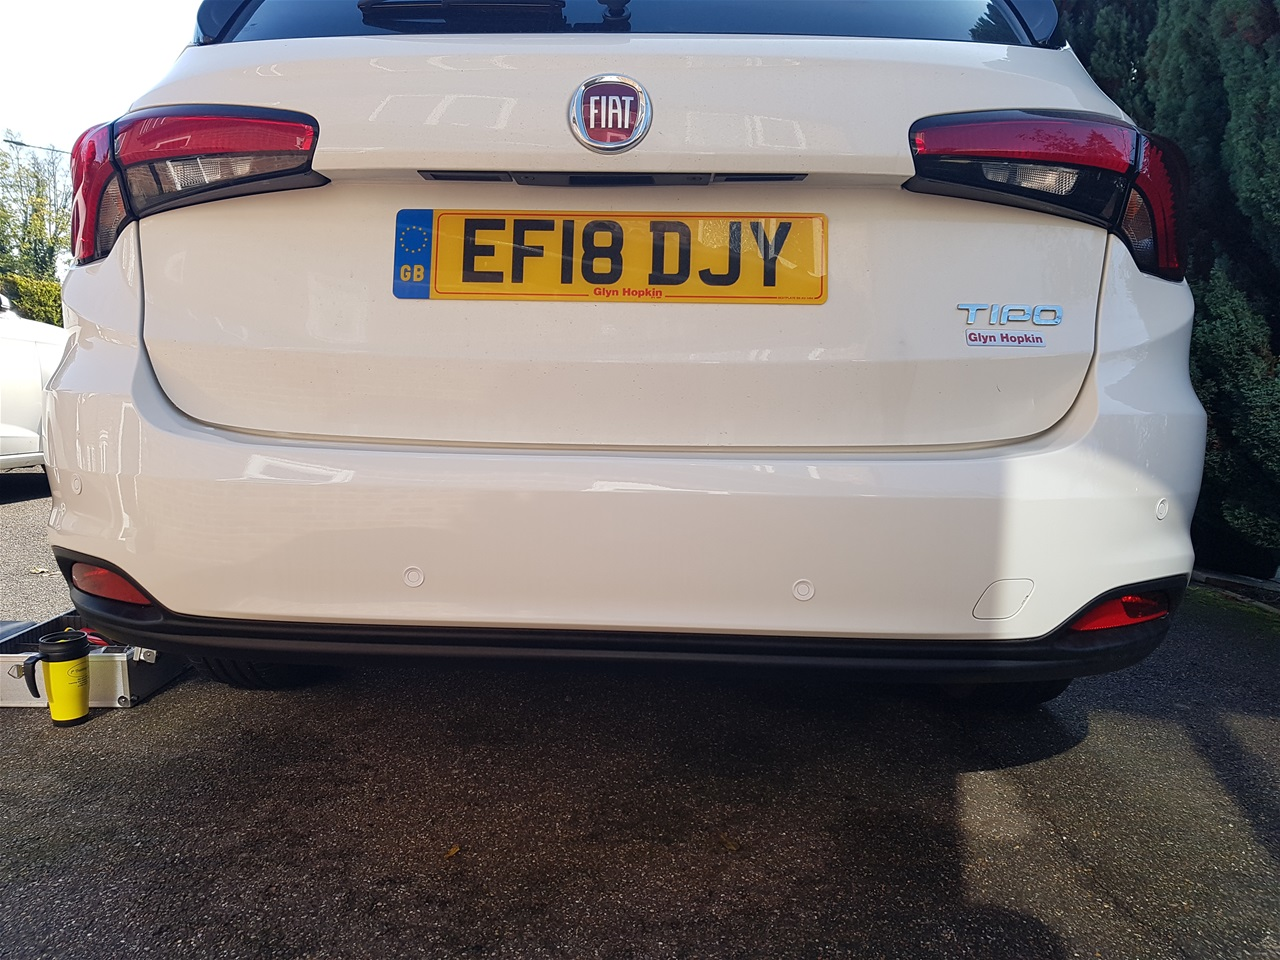 Fiat Tepo rear colour coded parking sensors